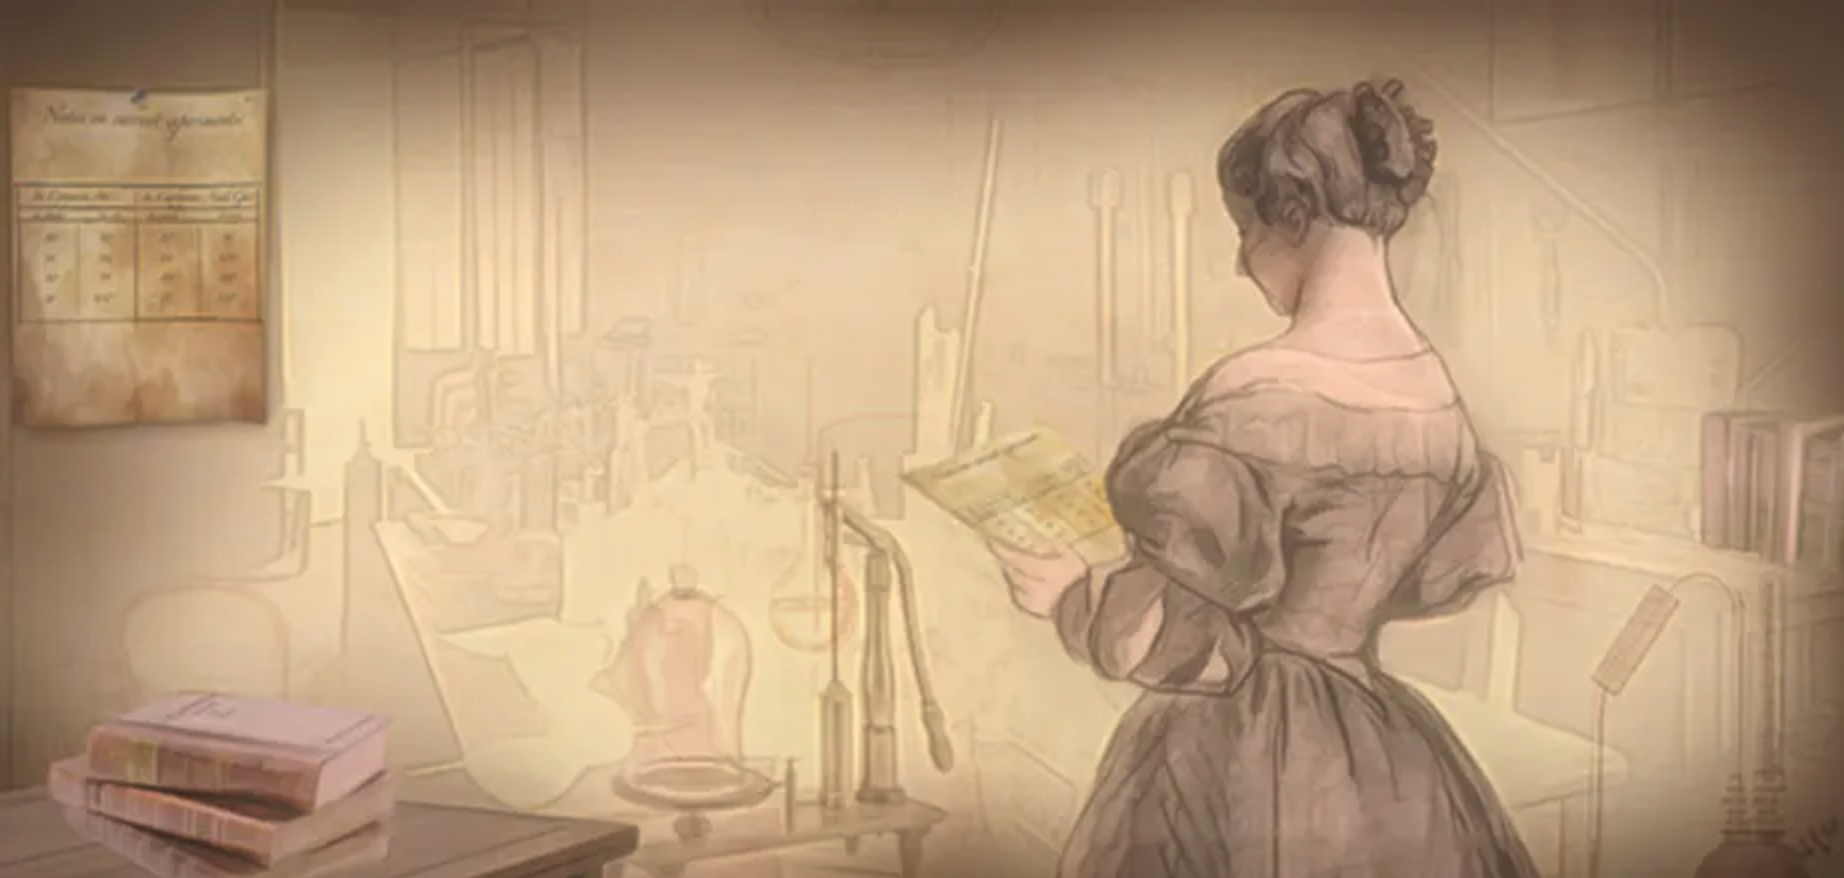 Scientists understood physics of climate change in the 1800s – thanks to a woman named EuniceFoote | Sylvia G. Dee